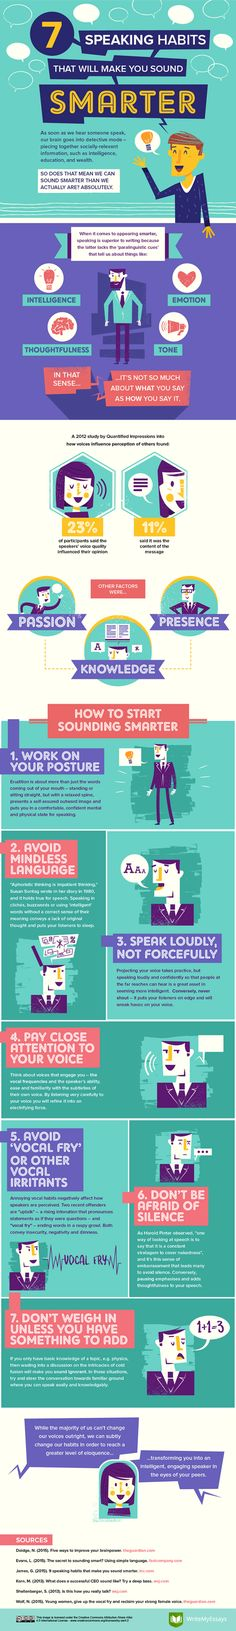 How to Sound Smarter in 7 Steps